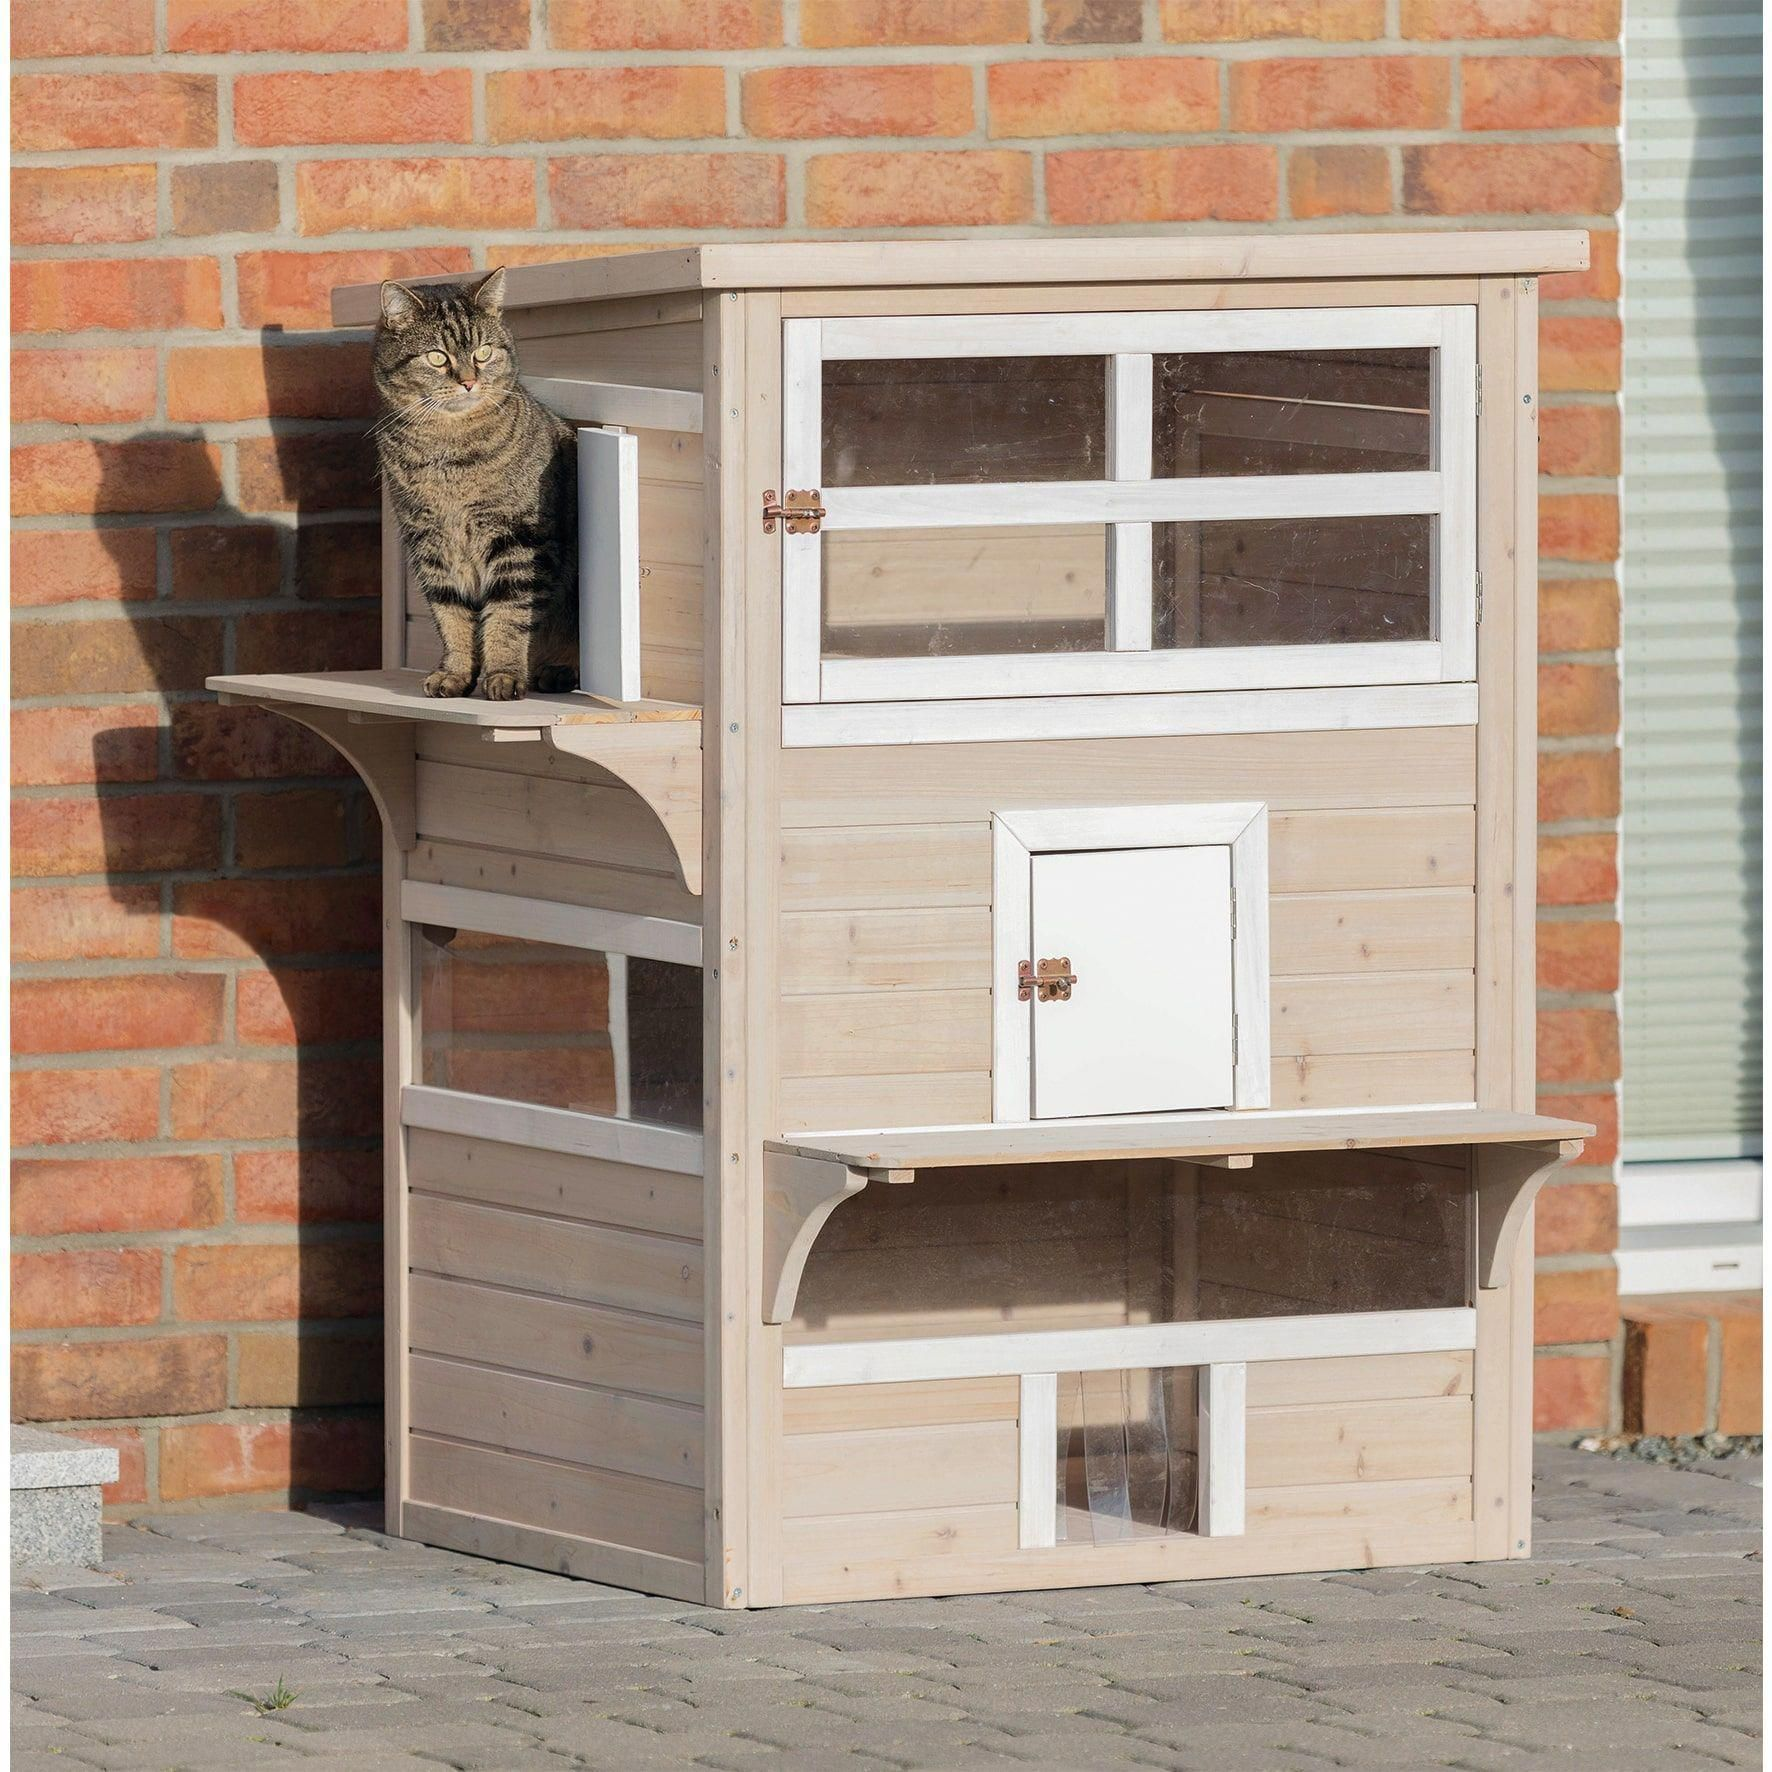 Trixie Pet Products Grey White Wood Xxl Three Story Outdoor Cat